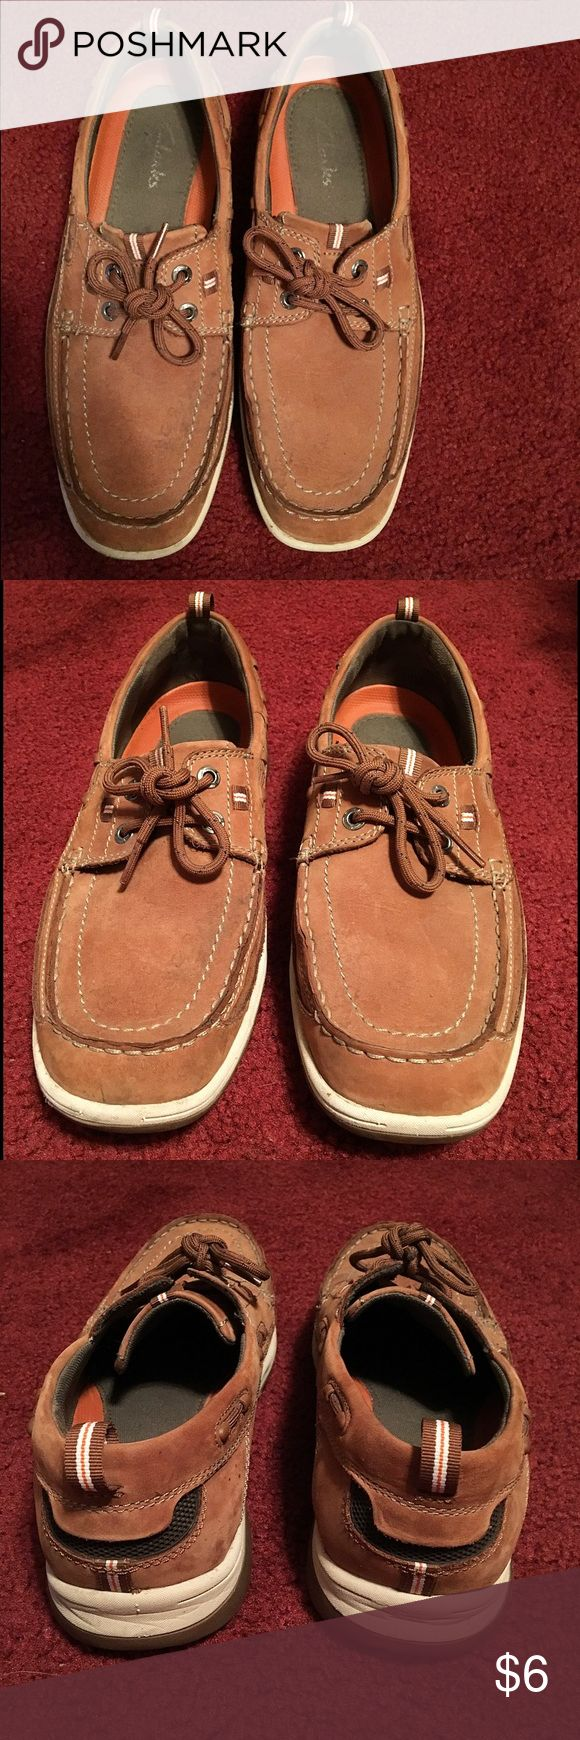 Clarks Men's Brown Boat Shoes Men's brown shoes (boat-like shoes) with lace in front. Comfortable to walk in and in good condition. Brown leather material with white and dark green accents. Used and shows wear but silk wearable! No trades. Clarks Shoes Boat Shoes